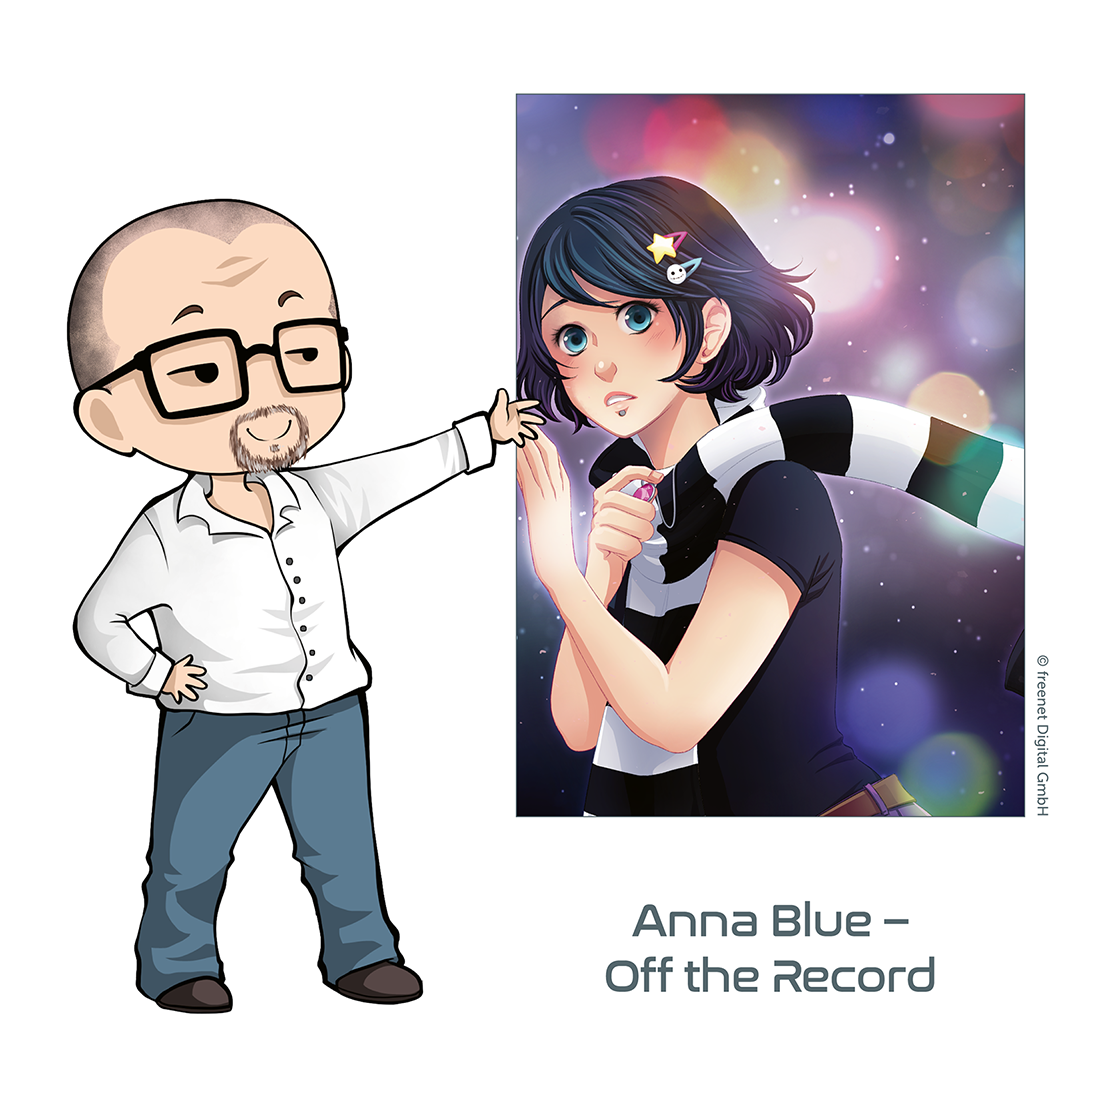 Anna Blue – Off the Record